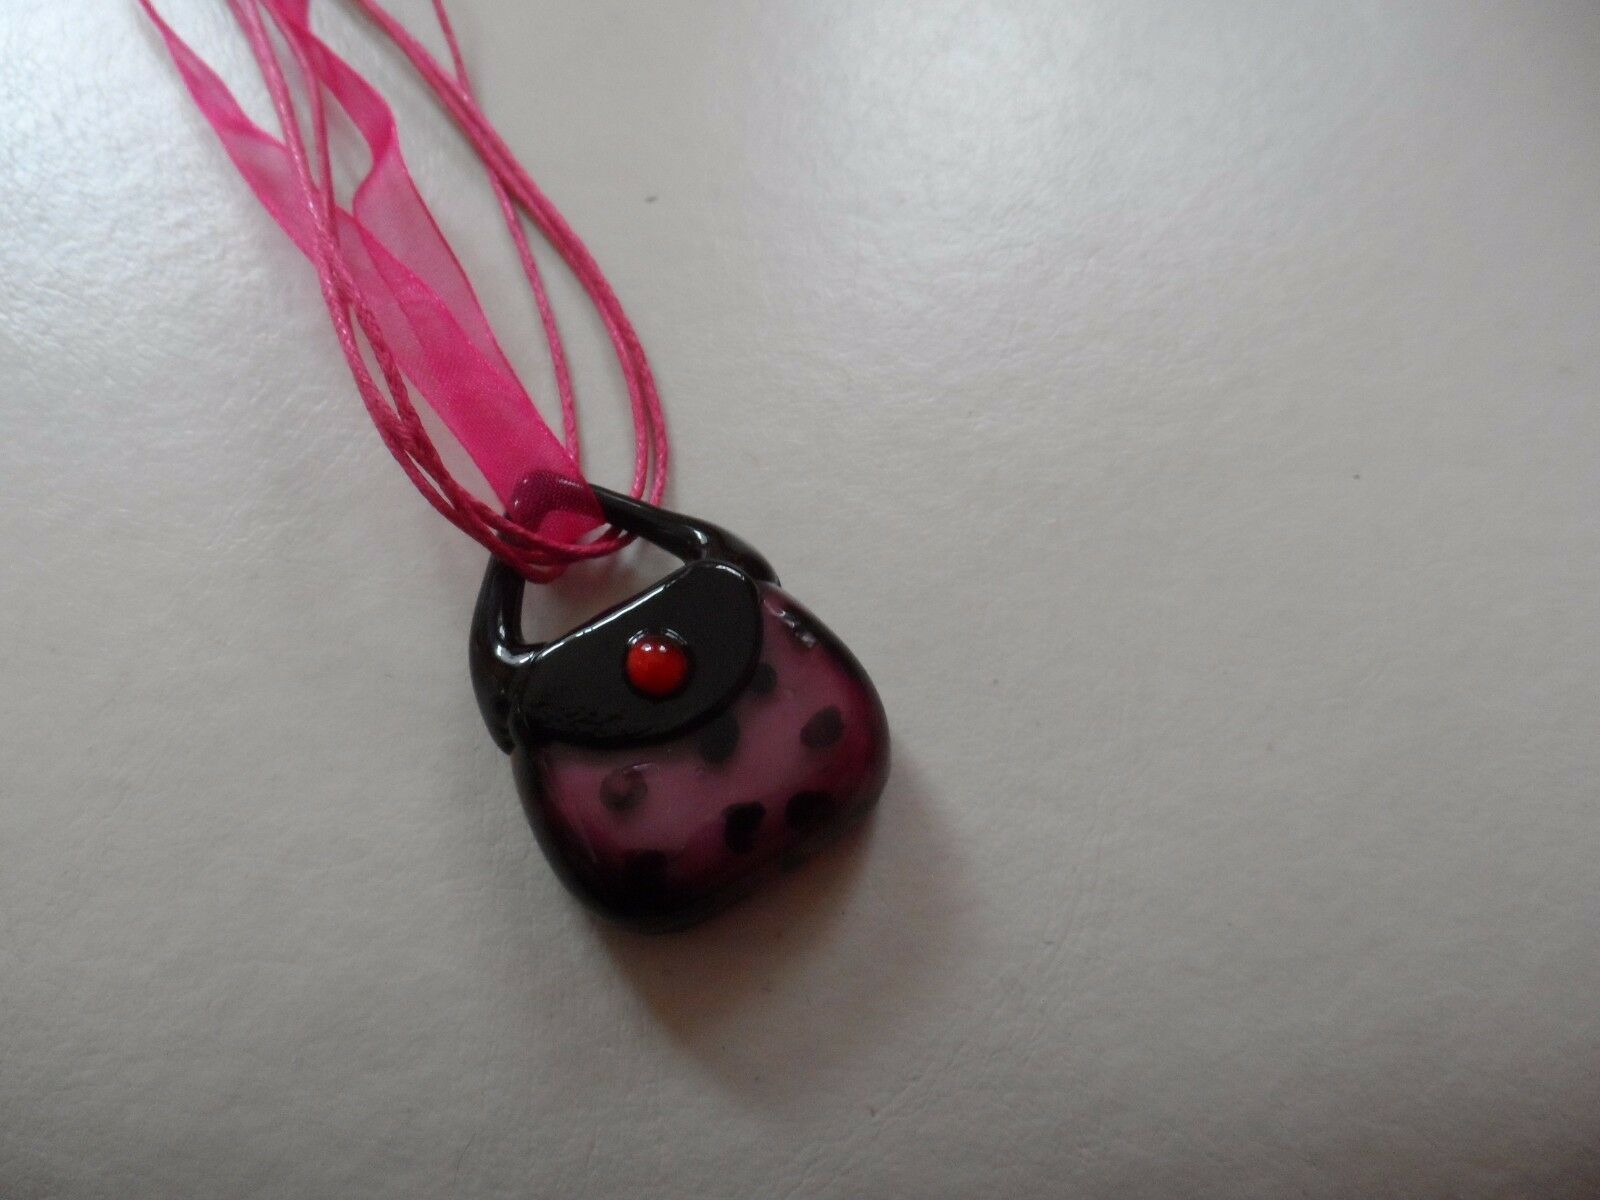 Eggplant and black Murano glass purse handbag pendant on a ribbon necklace